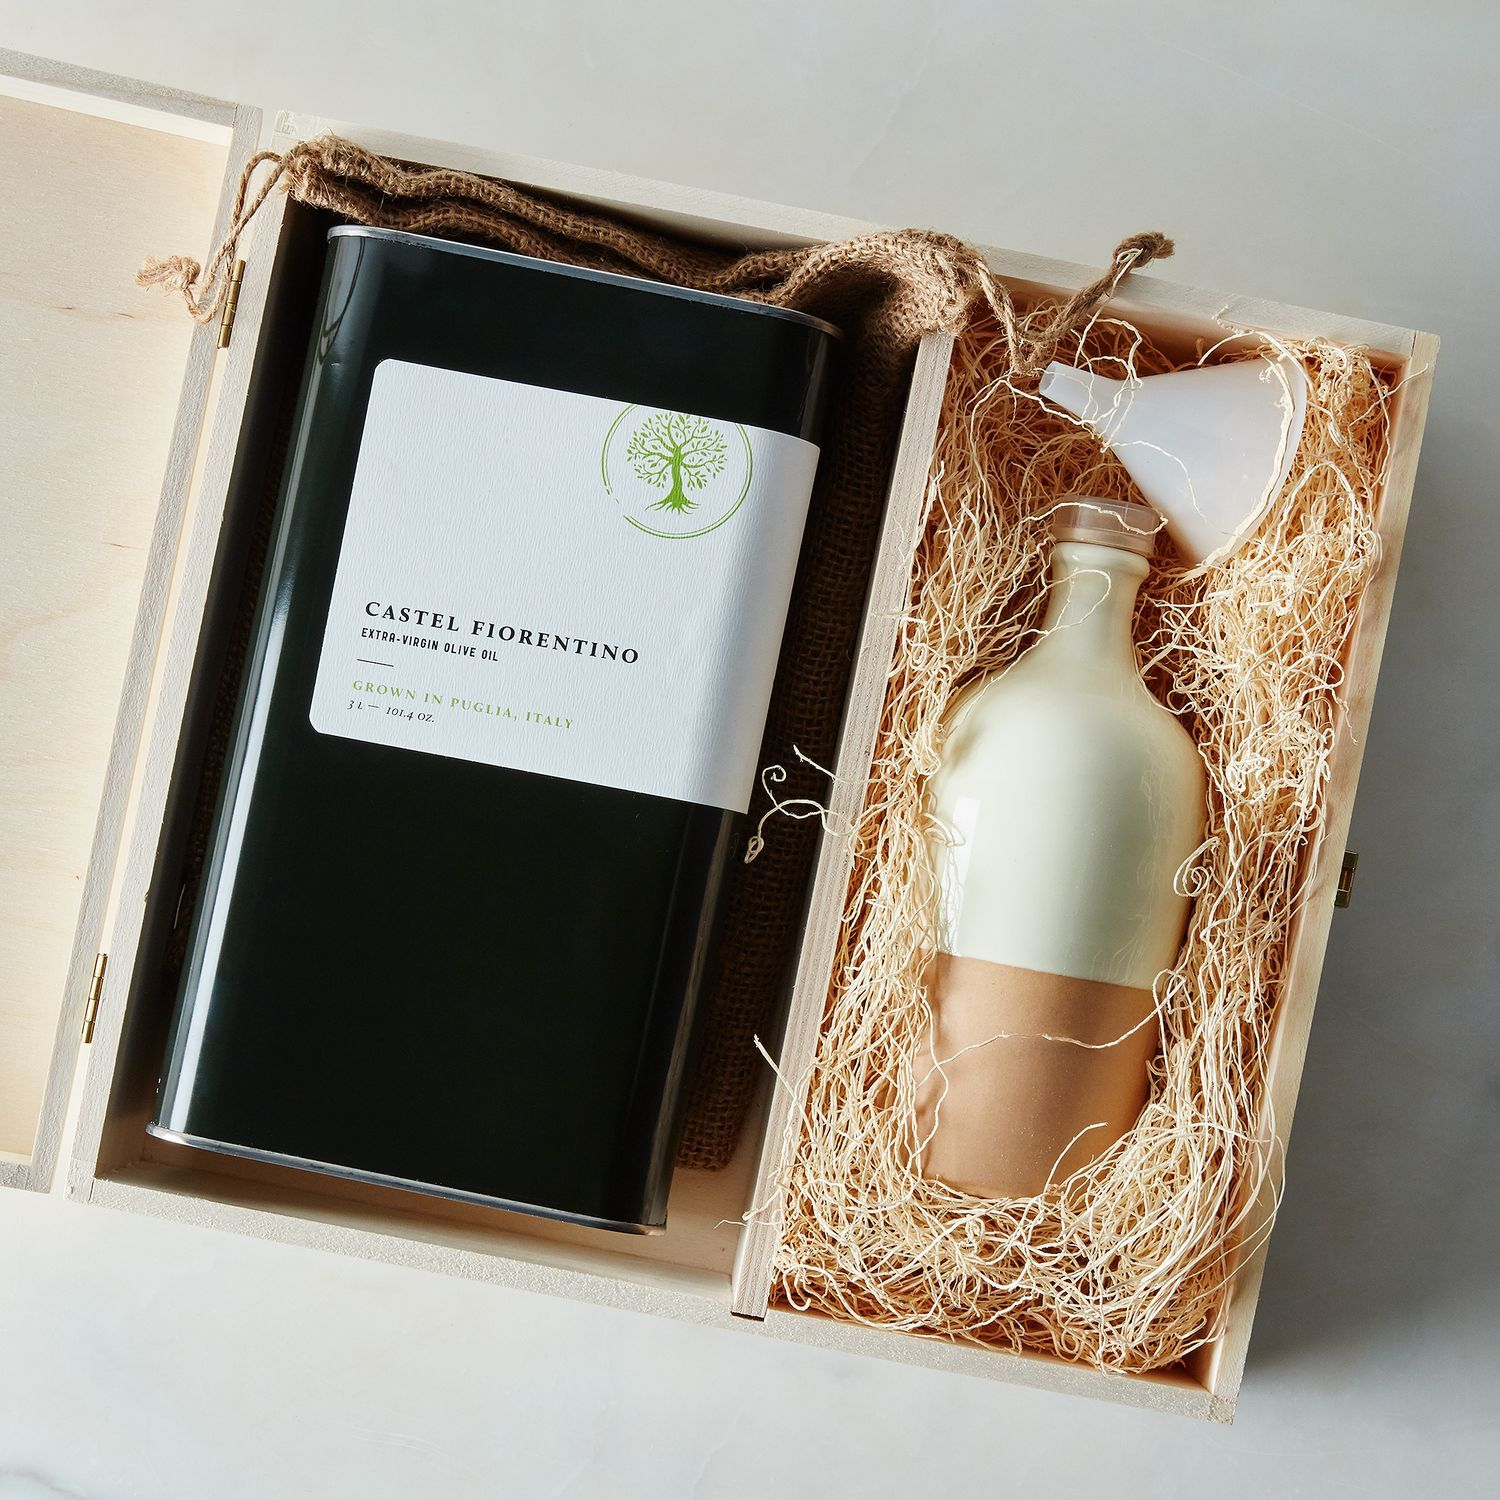 Beauty At Home Castelfiorentino adopt an olive tree gift box + subscription (with images